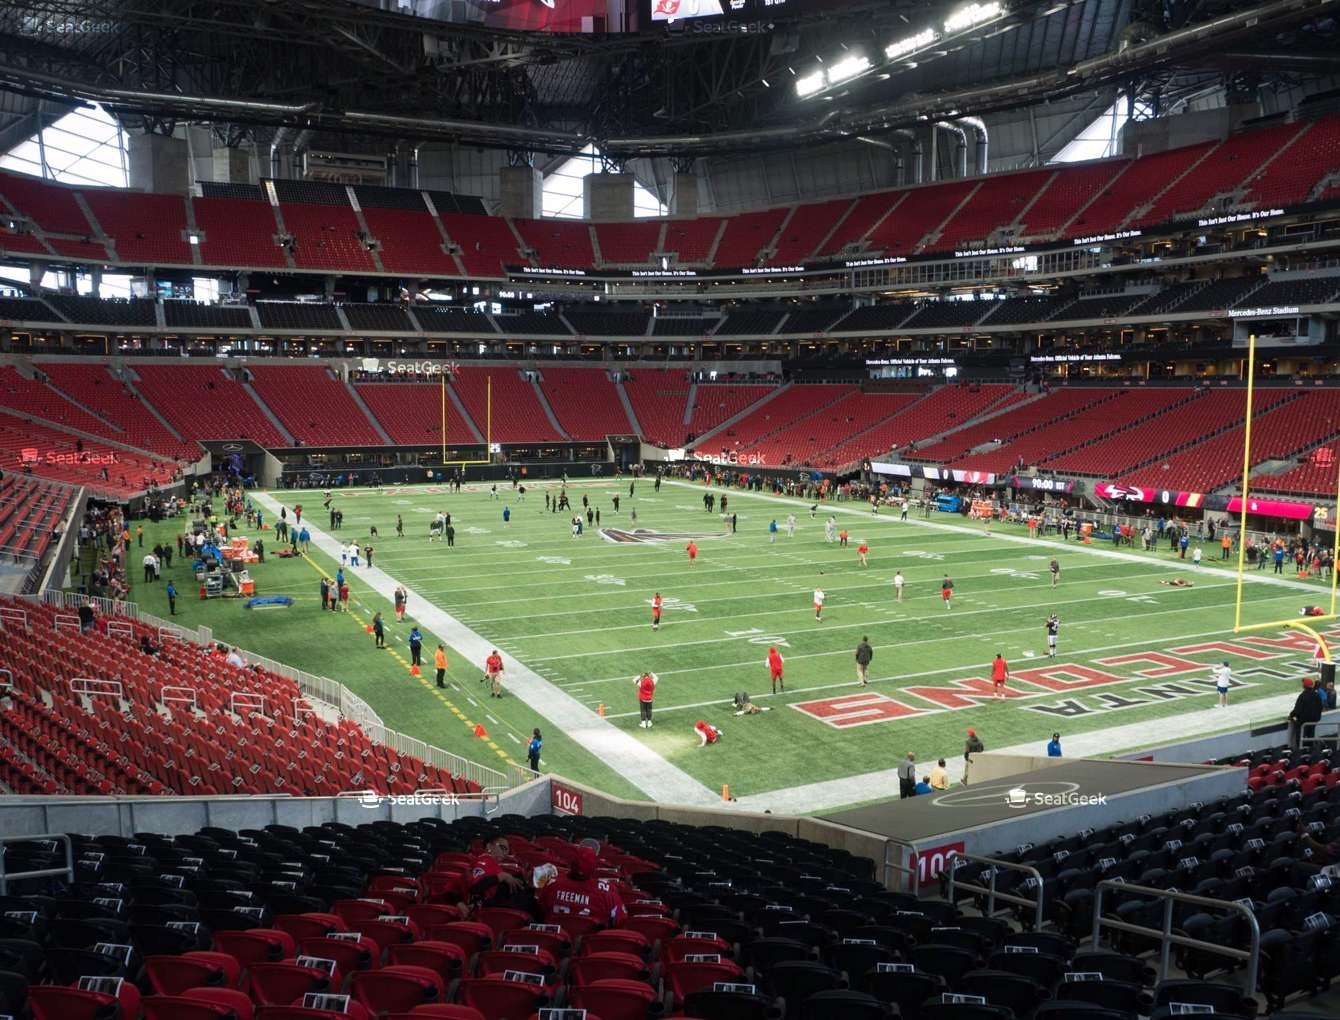 Mercedes-Benz Stadium Section 104 Seat Views | Seatgeek throughout Super Bowl Atlanta Seating